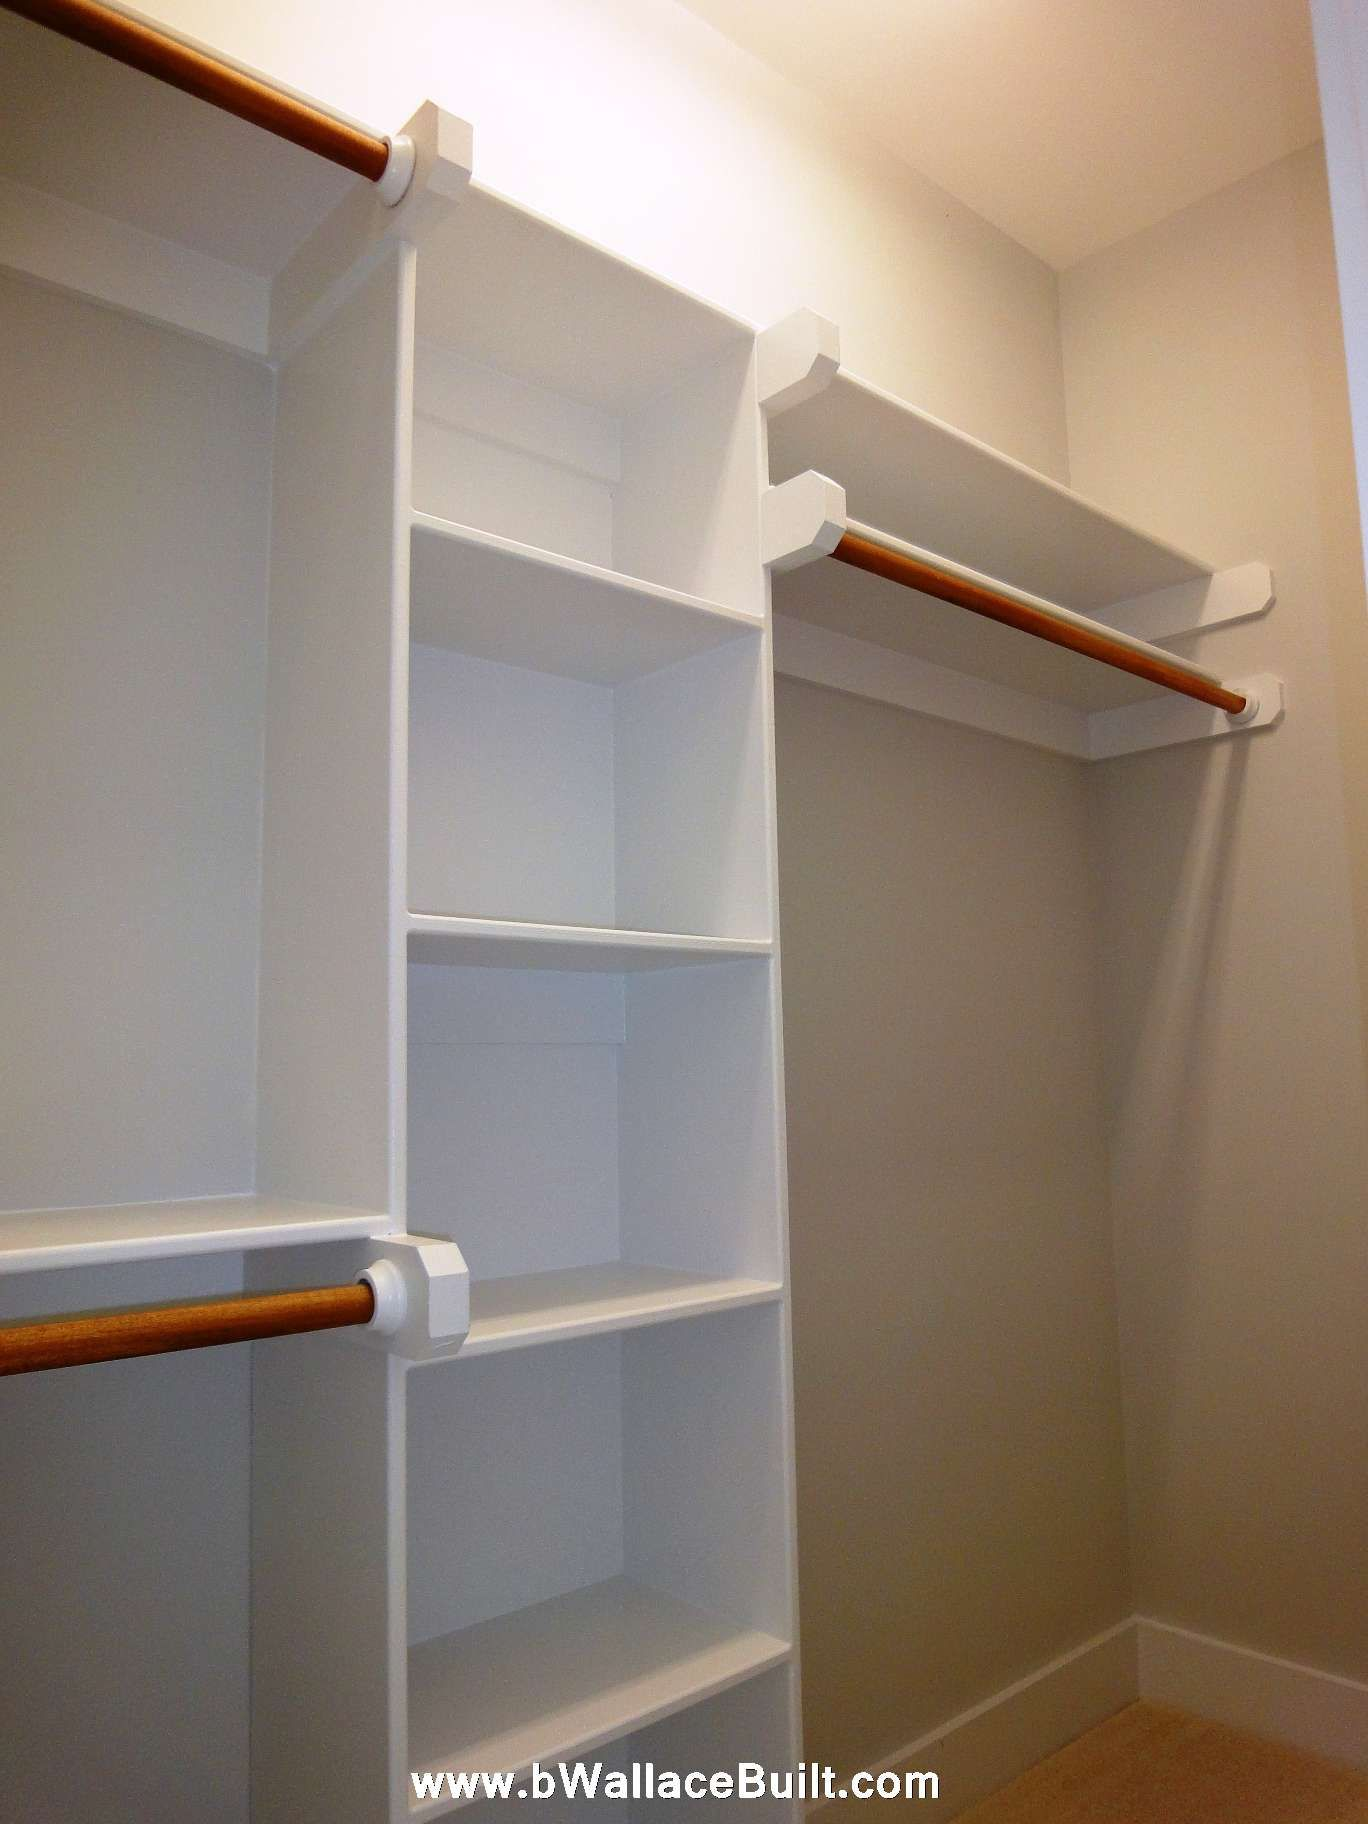 how our the organized up fill diy from i wire easy for linen you t closet details tomorrow custom wait closets ll can with in shelving be and it newly shelves wooden looking tutorial back switch cheap replace wood your happy show now to those this